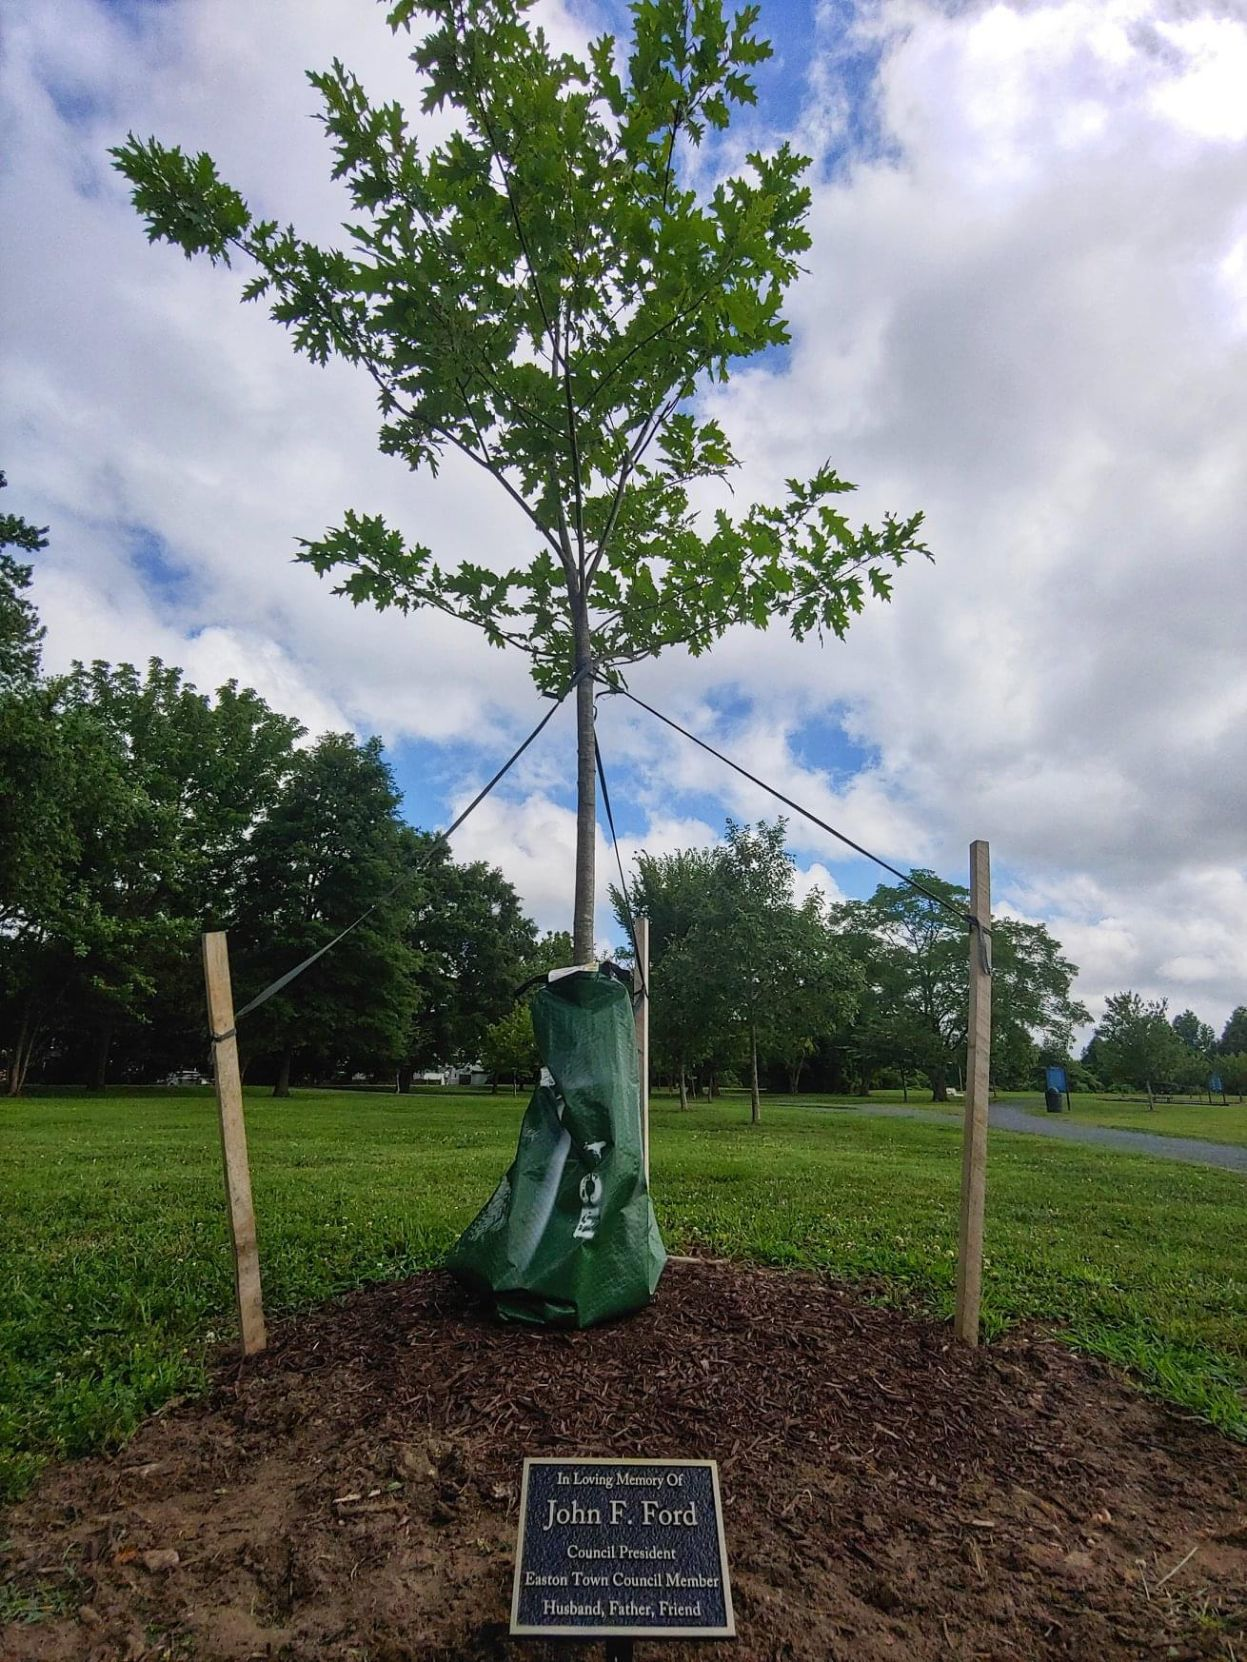 Memorial tree dedicated to Ford